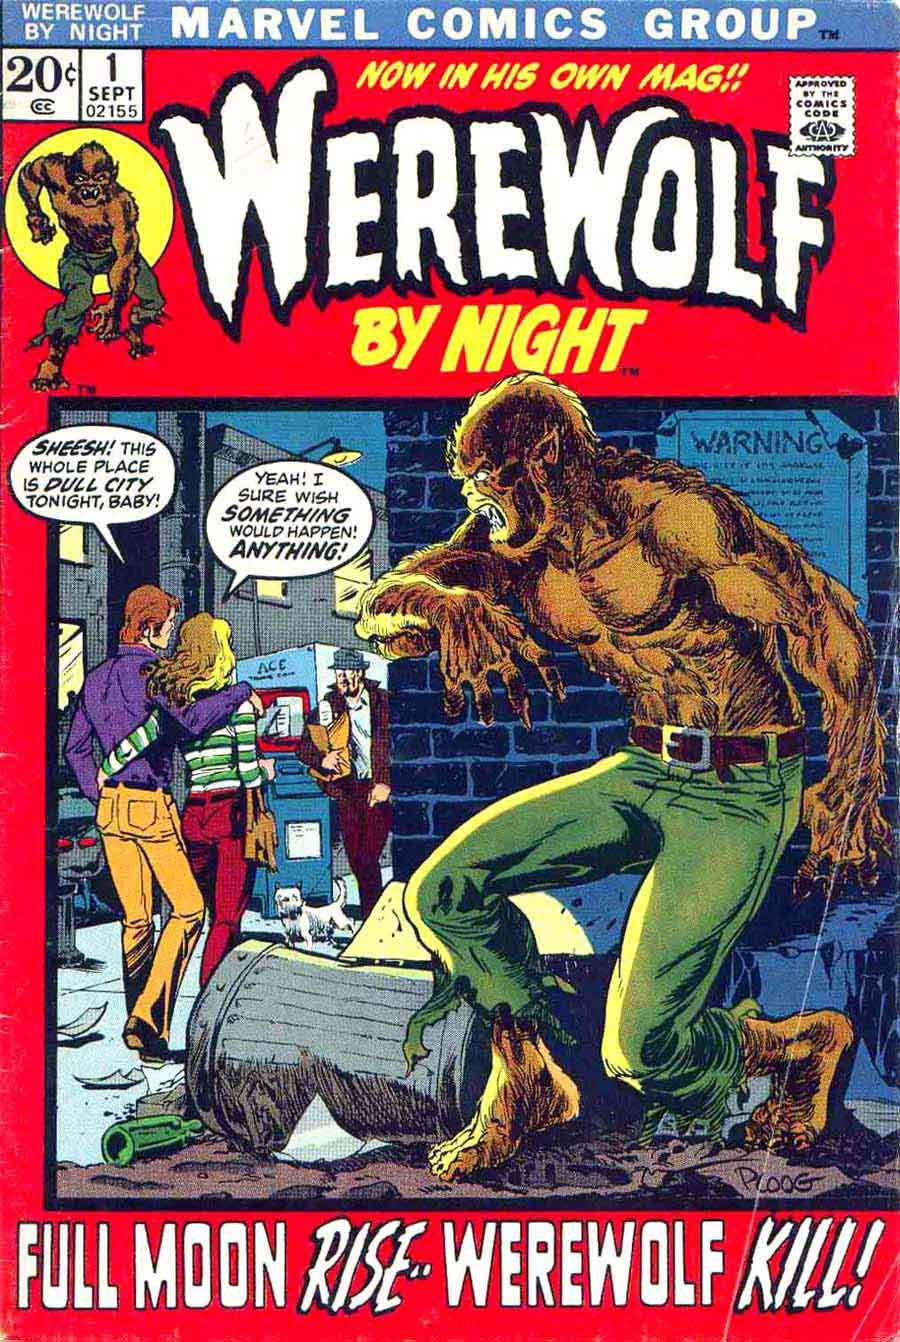 Werewolf by Night v1 #1 1970s marvel comic book cover art by Mike Ploog